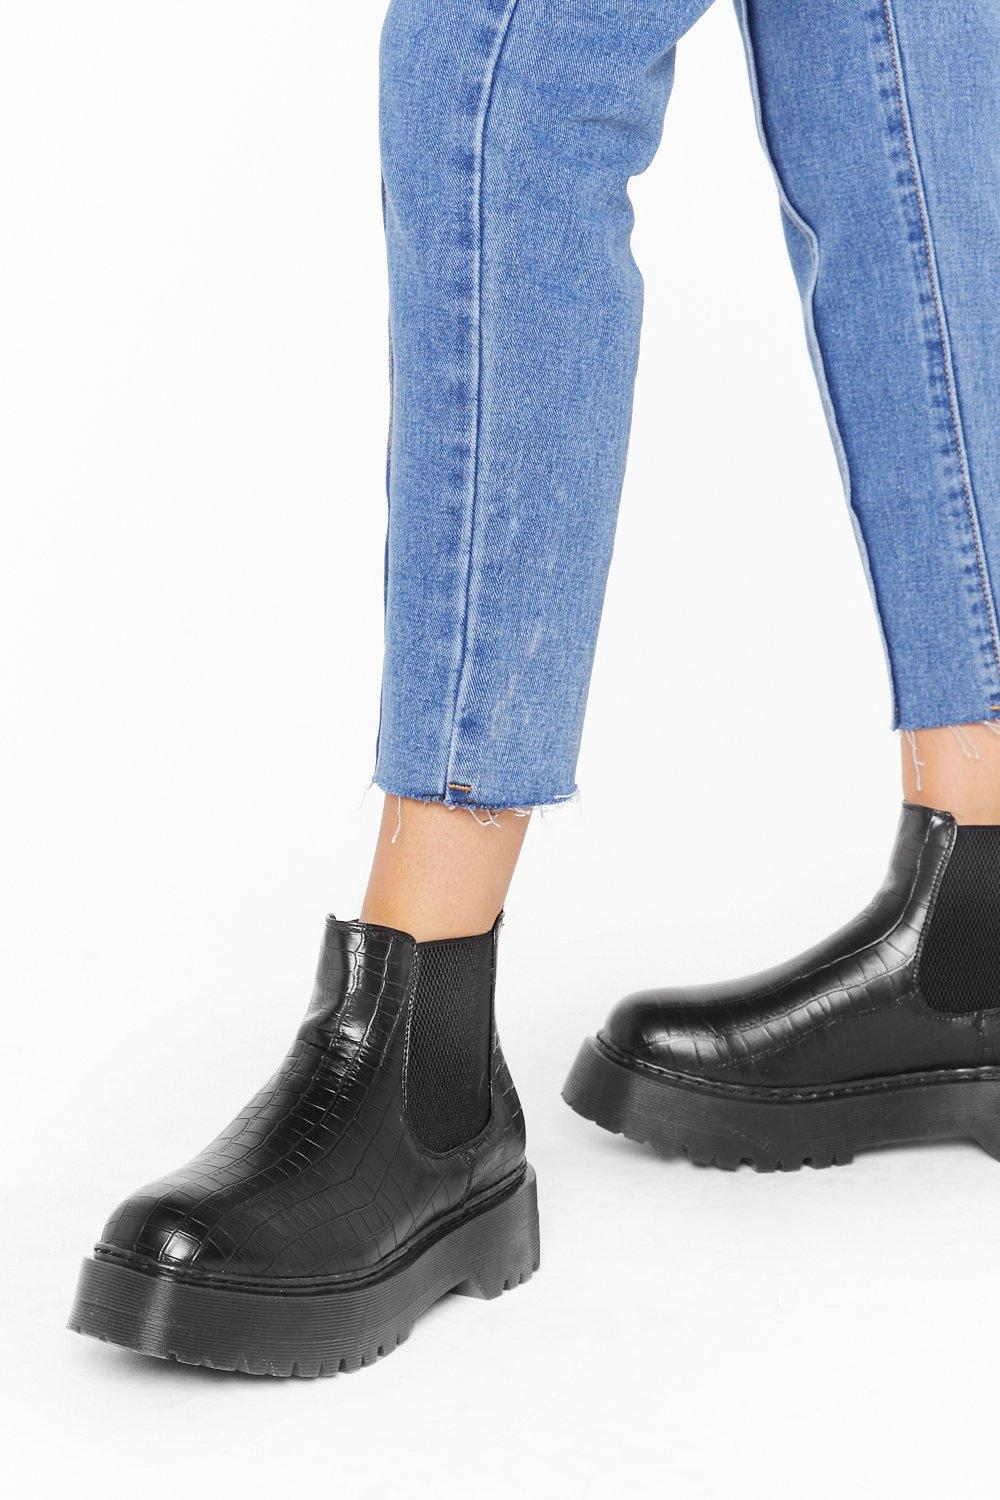 Image of Croc Yourself Out Faux Leather Ankle Boots